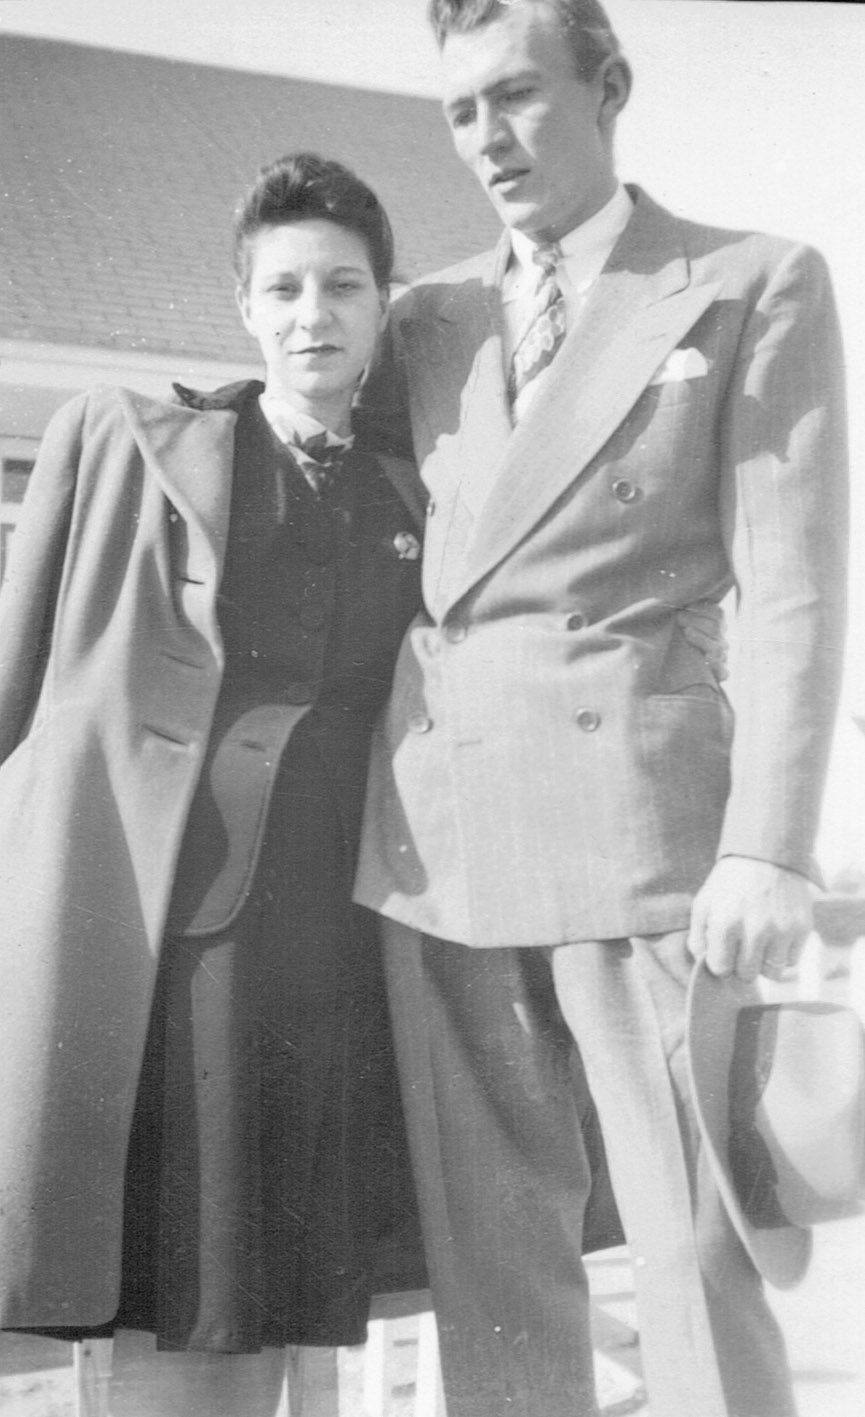 William and his wife departing on their honeymoon, August 1946.